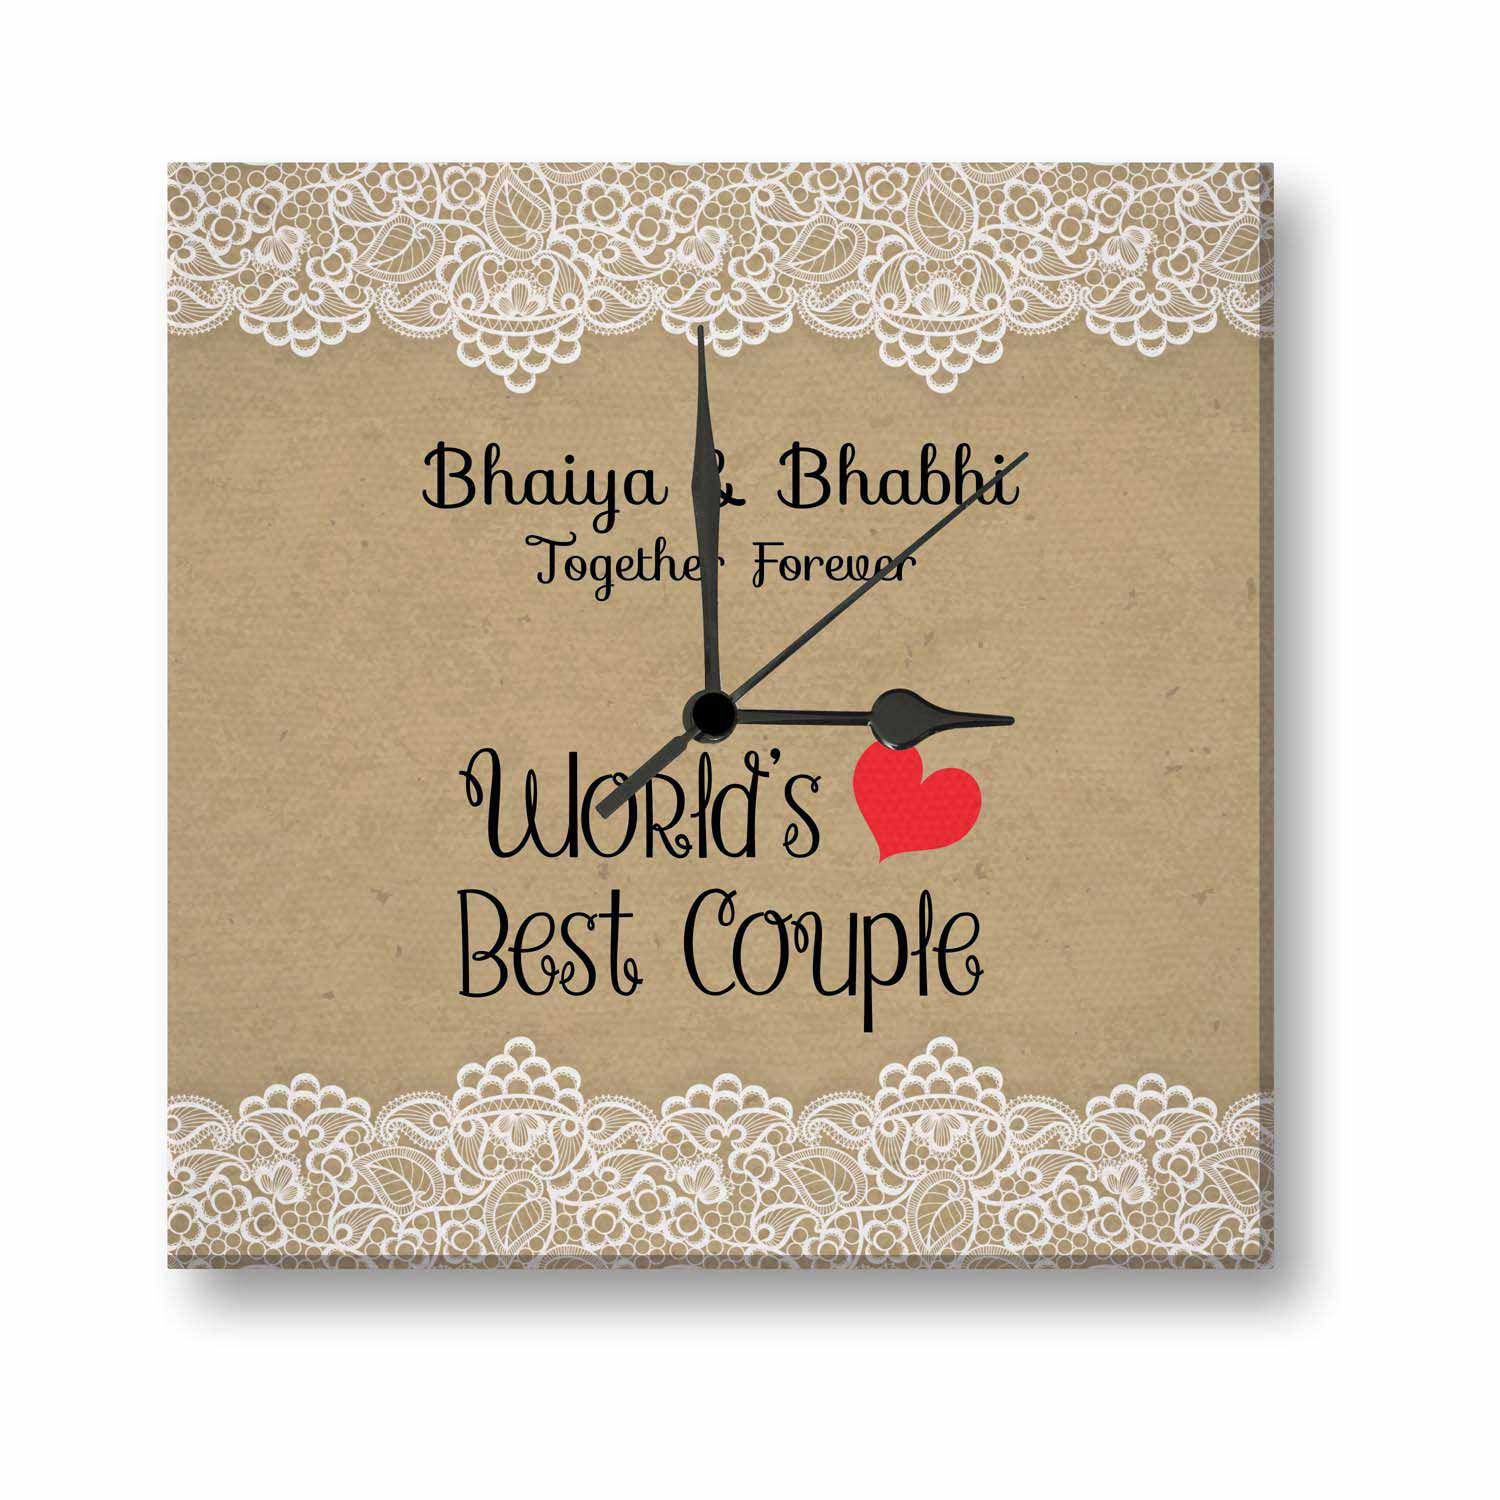 Happy Anniversary Wishes for Bhaiya & Bhabhi Quotes